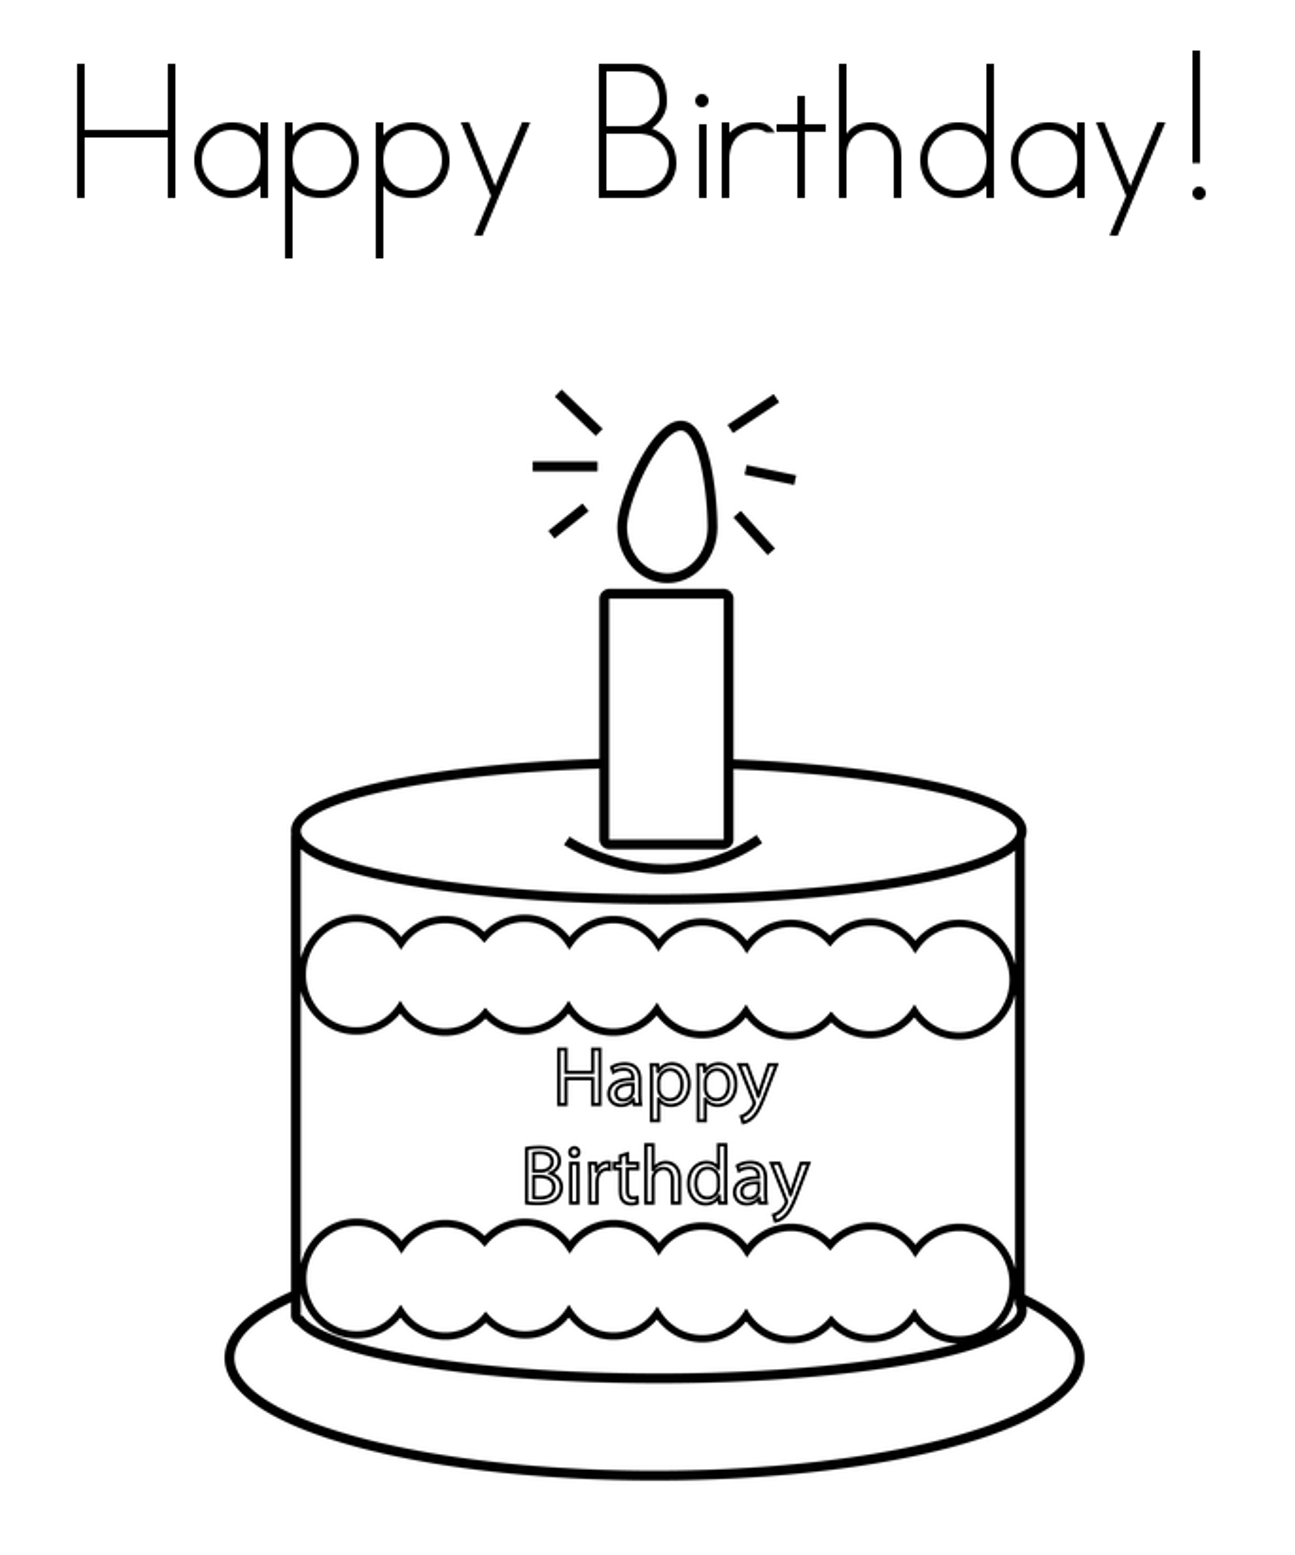 happy birthday cake coloring page